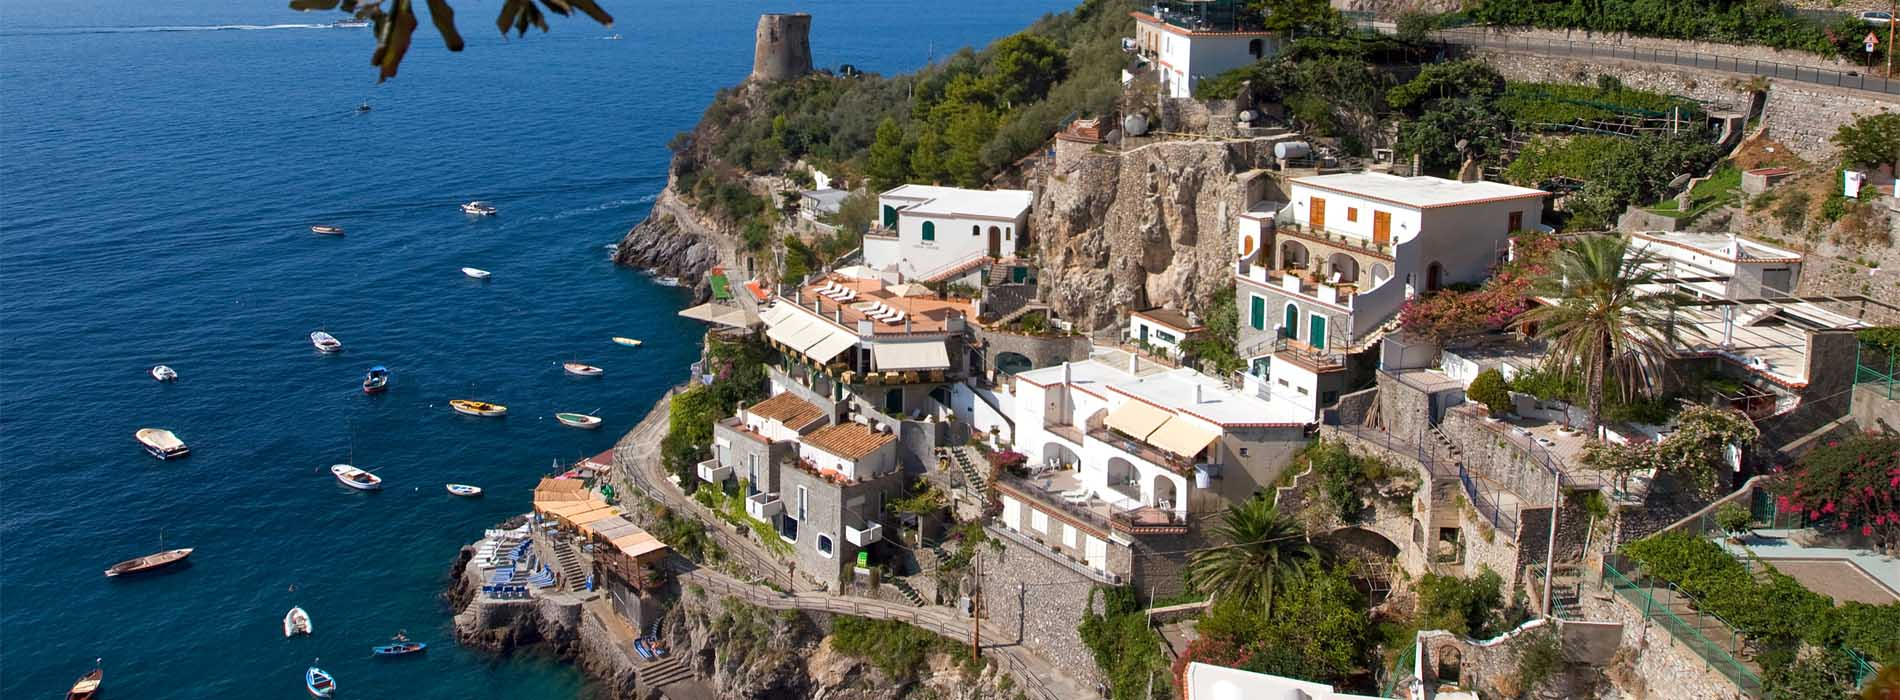 Positano Hotels Italy Map Pictures Travel Tours Of